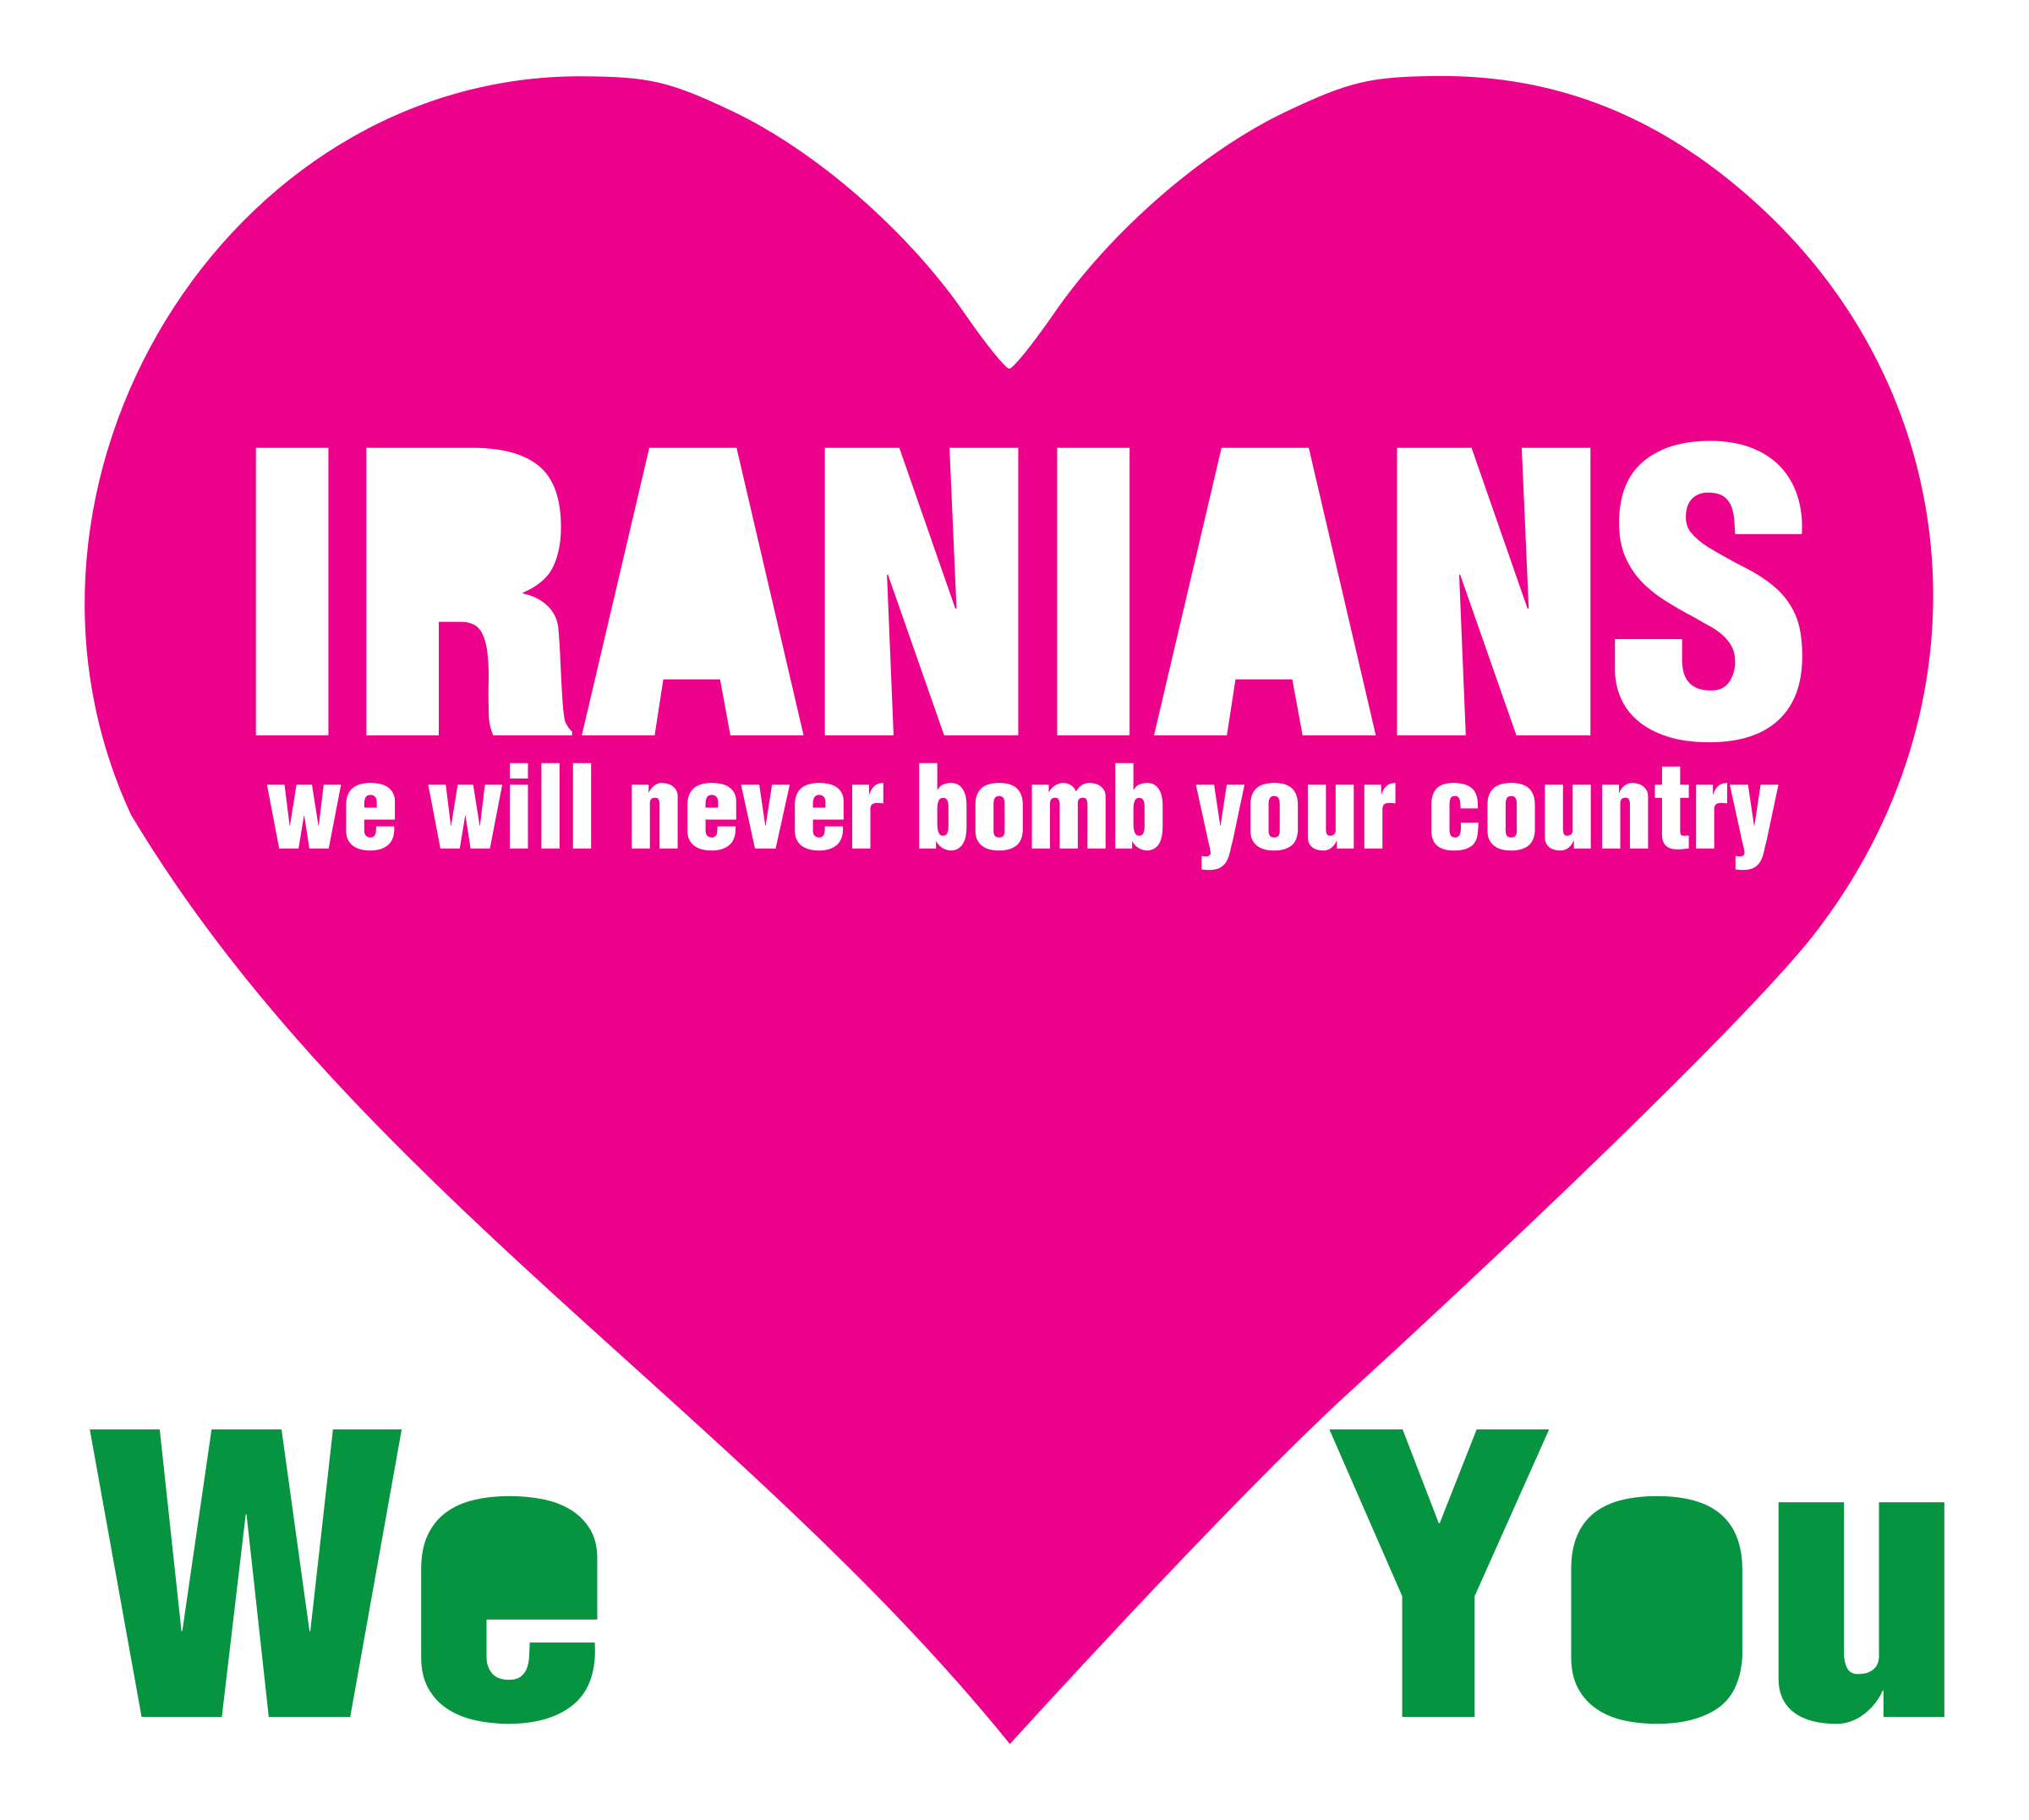 Bomb clipart heart. Iranians we will never